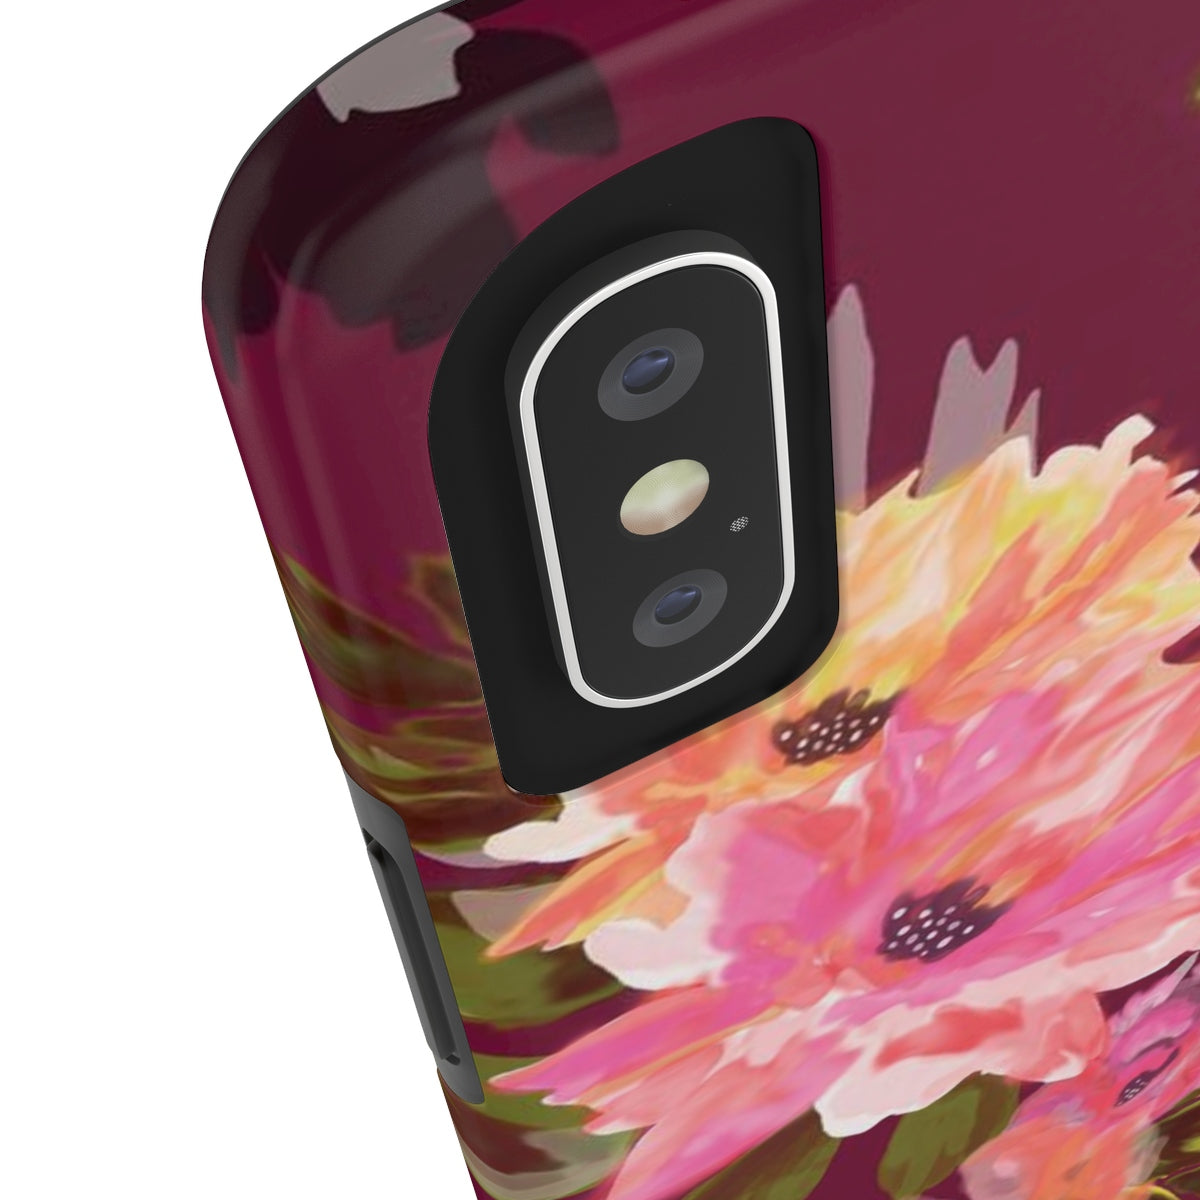 Analucia Merlot Added Amour Phone Case